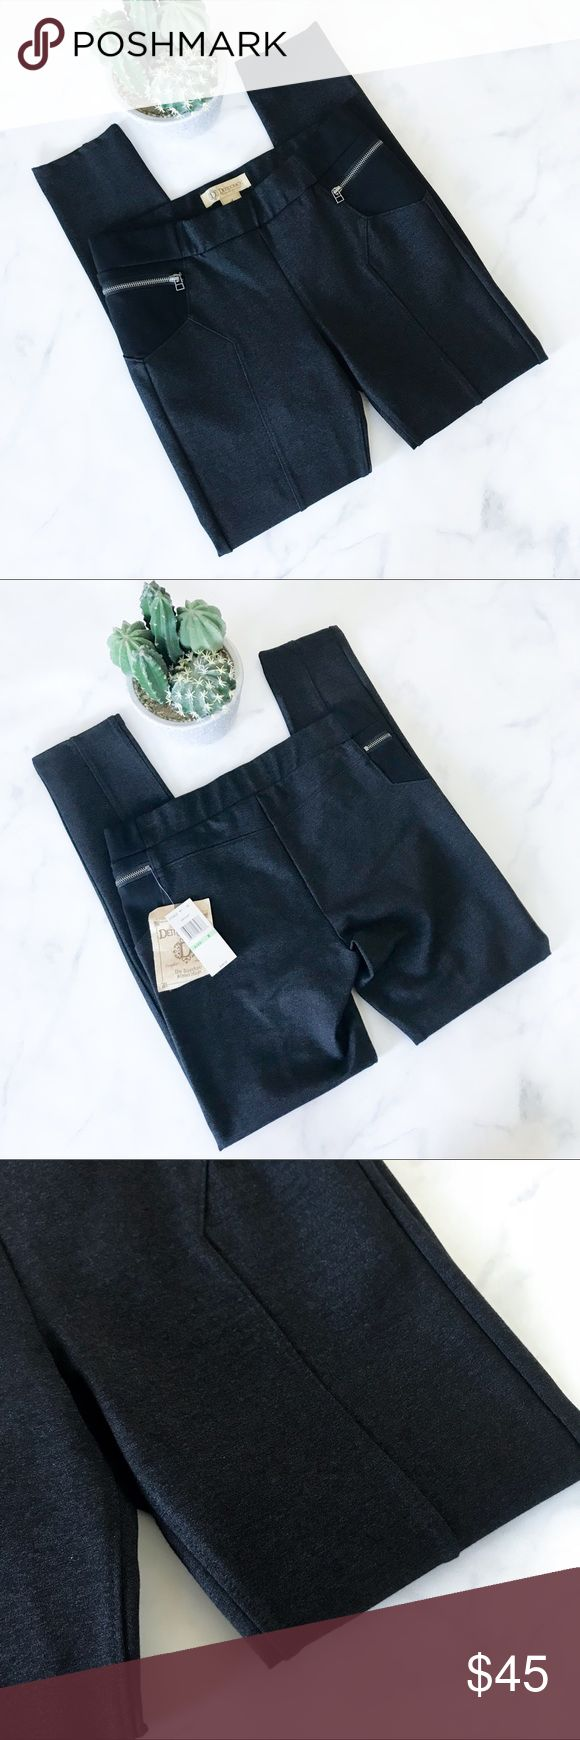 High Quality Democracy Zipper Leggings Brand new with tags! (0197)   PRODUCT DETAILS: •Size: 7/8 •Colors: Black, Dark Gray •Made in China •Measurements: Waist-14.5inch Length-37.5inch Inseam-29inch Rise-9inch •Thick High Quality Material  •68% rayon, 21% nylon, 8% polyester, 3% spandex •Machine Wash •Elastic Waistband •Zipper detailing  •Futuristic Paneling and hems •Engineered to lift, expand and embrace because all shapes are not created equal  Tags: pant legging pants club hugging…